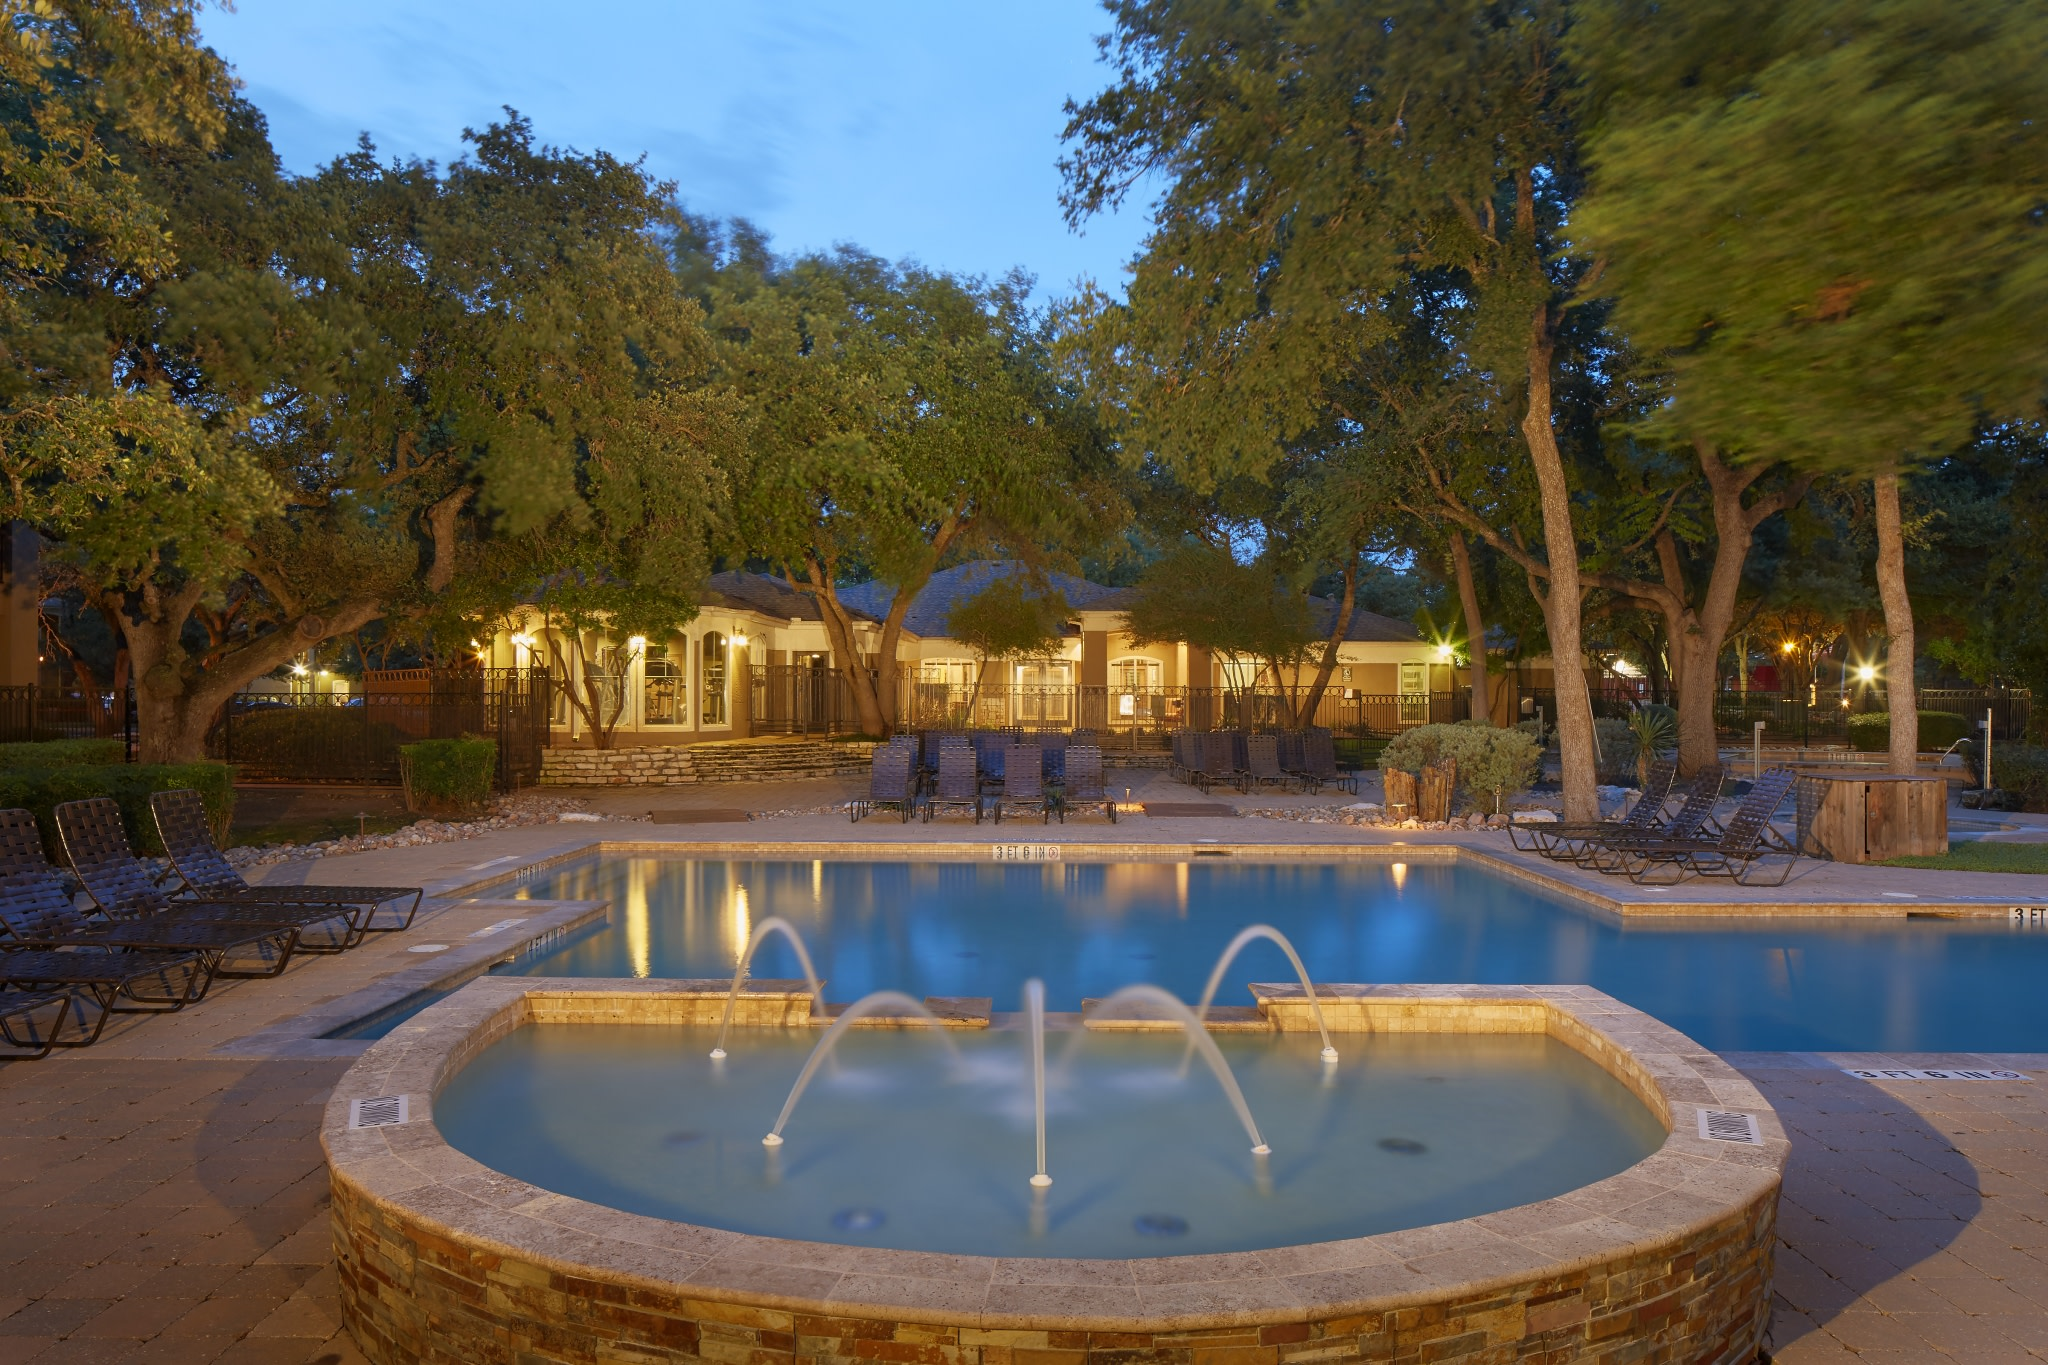 20 Best Apartments In Brushy Creek, TX (with pictures)! - p. 4